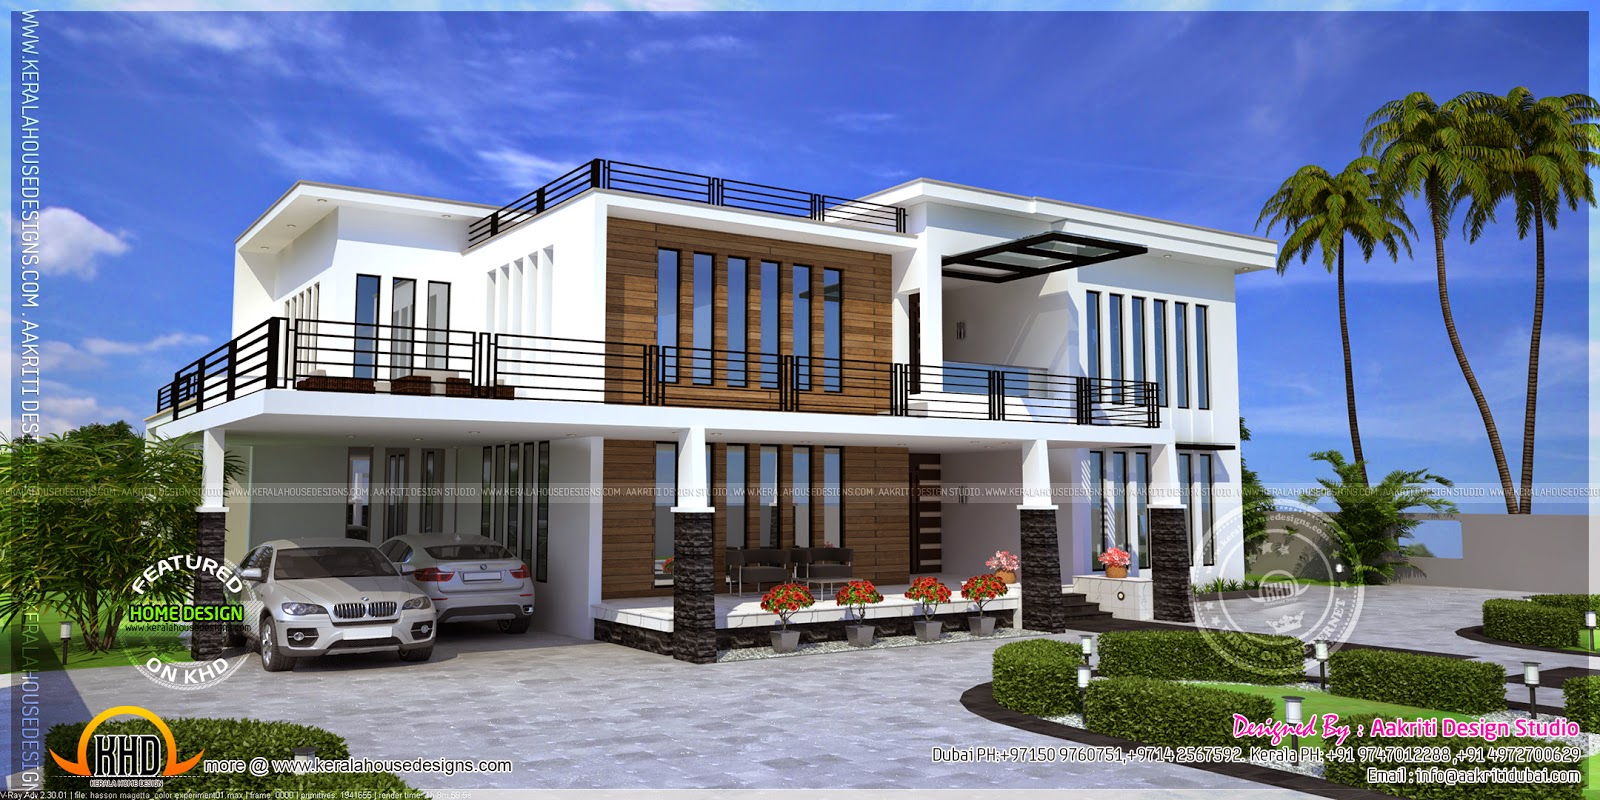 House Design Outside View Of Contemporary House View Kerala Home Design And Floor Plans